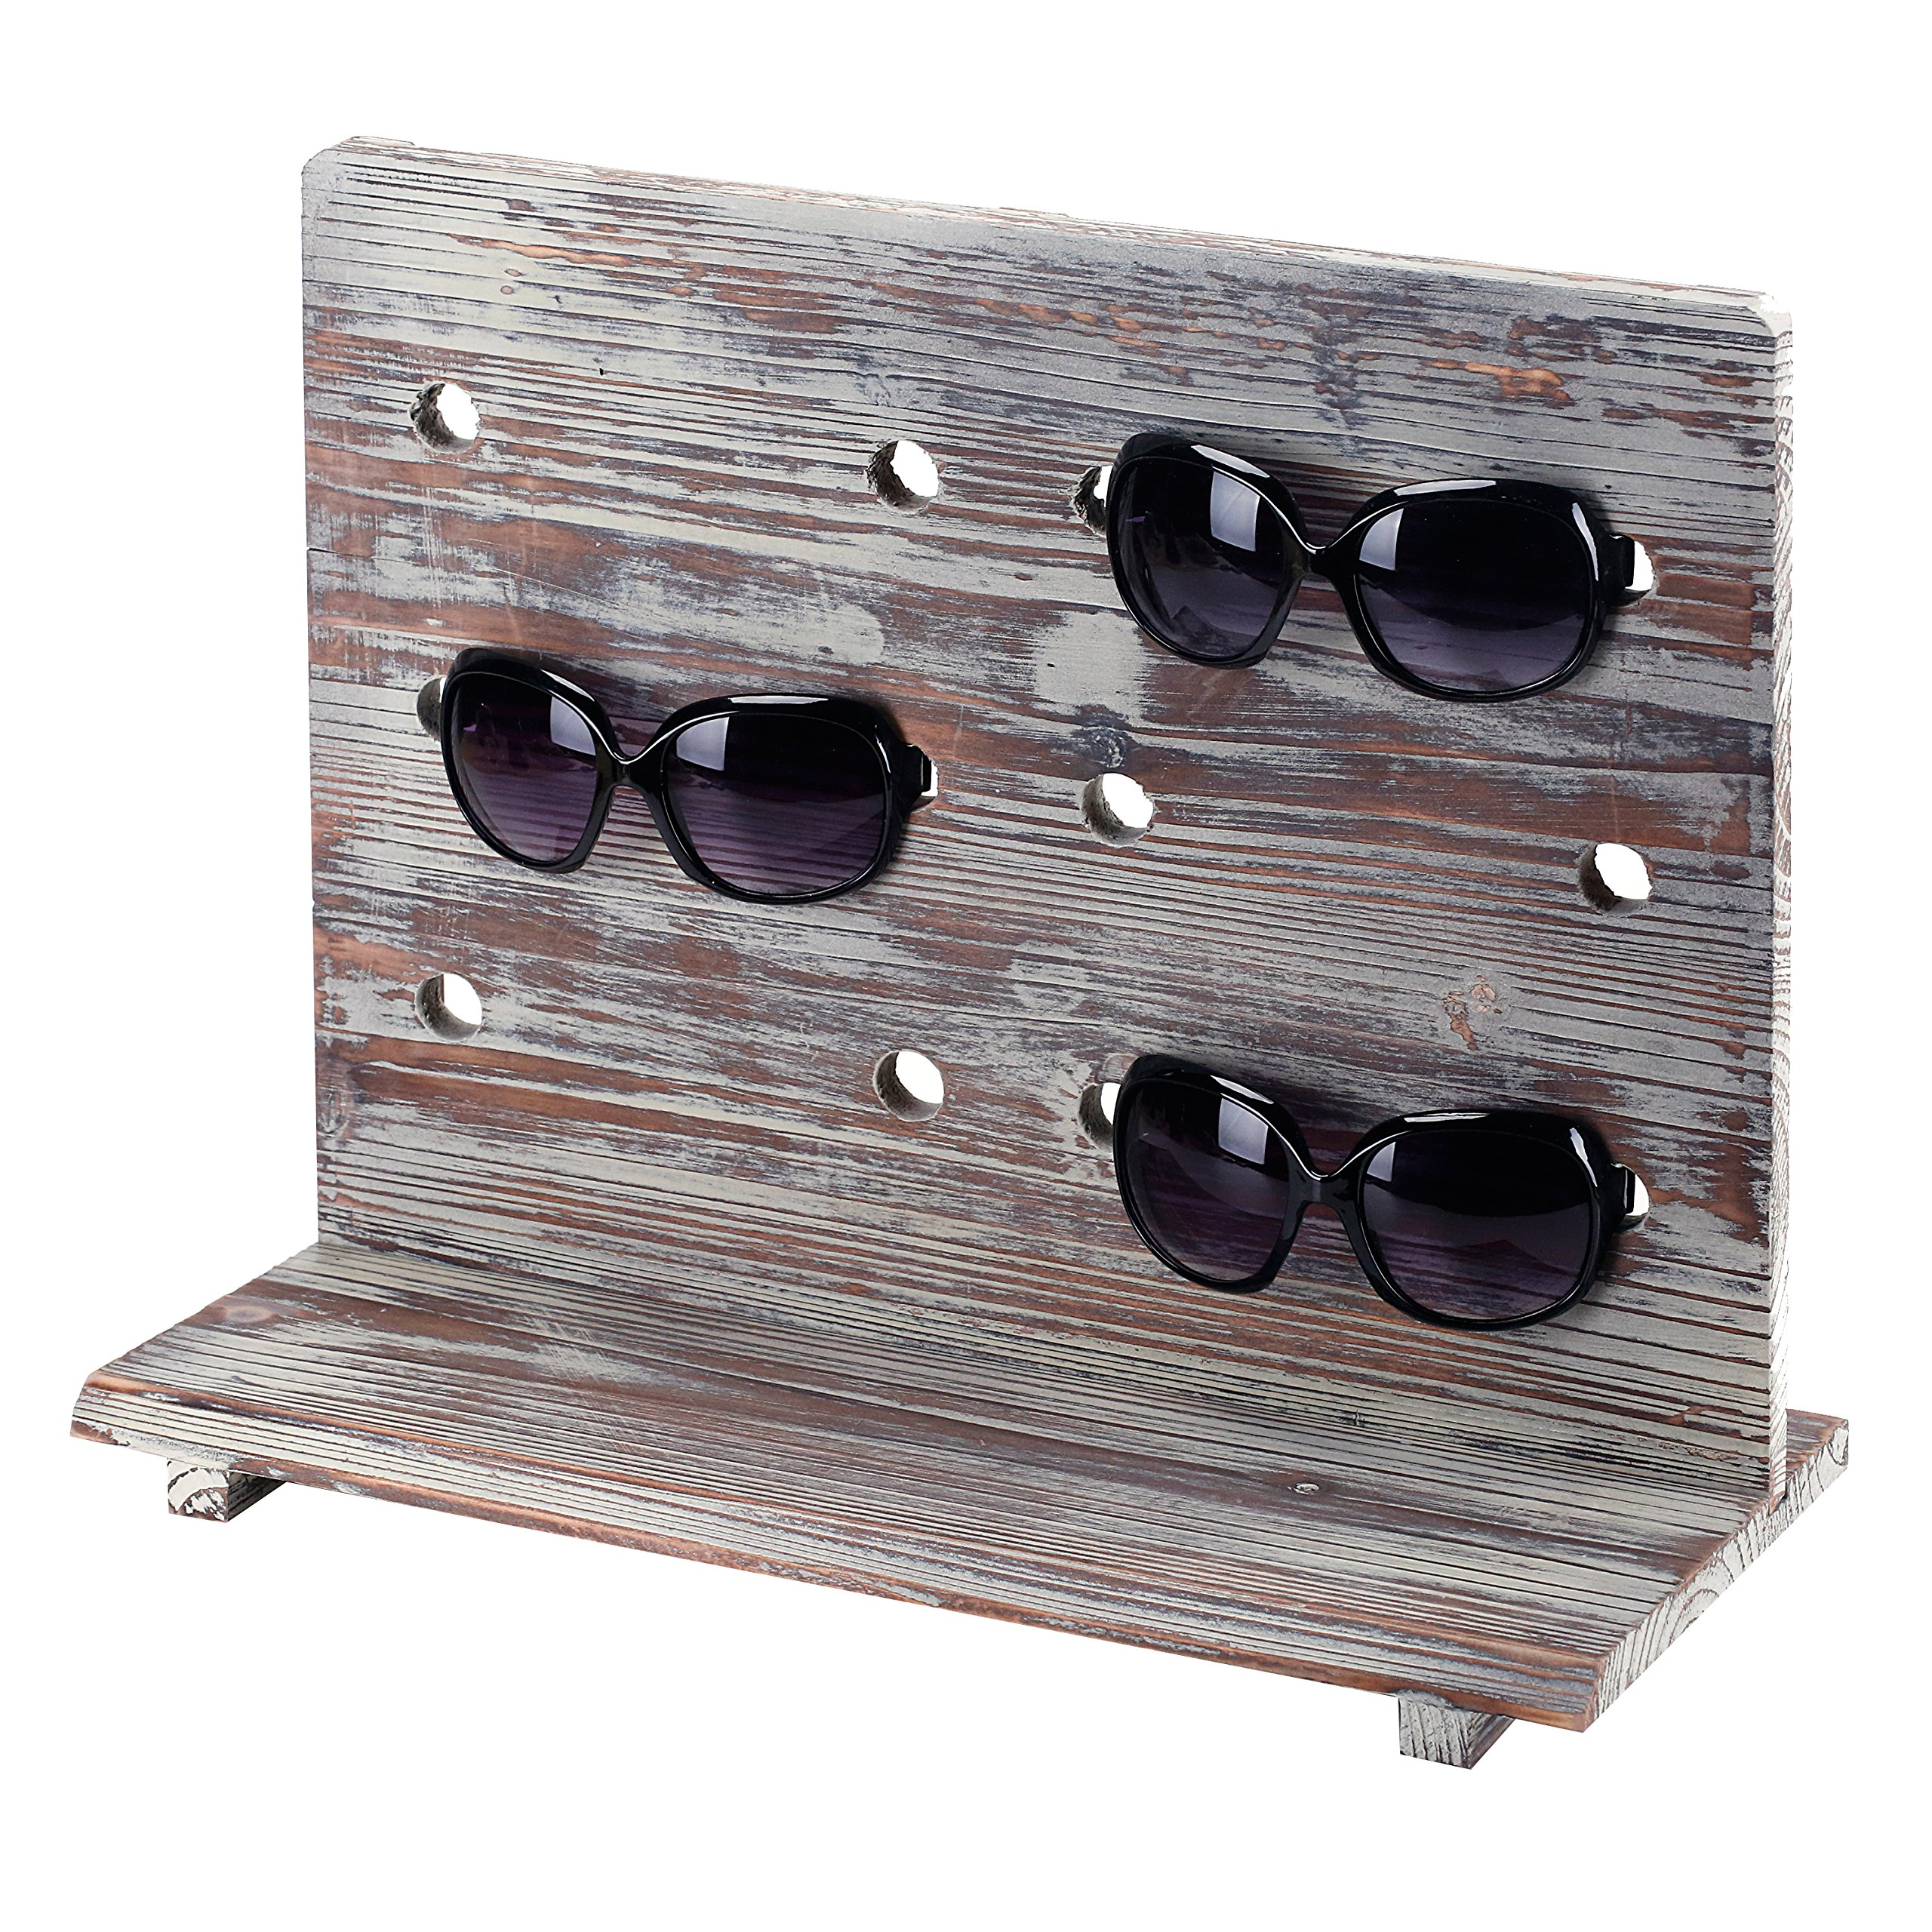 Rustic Torched Wood 6 Pair Sunglasses Countertop Display Stand, Retail Eyewear Holder Rack by MyGift